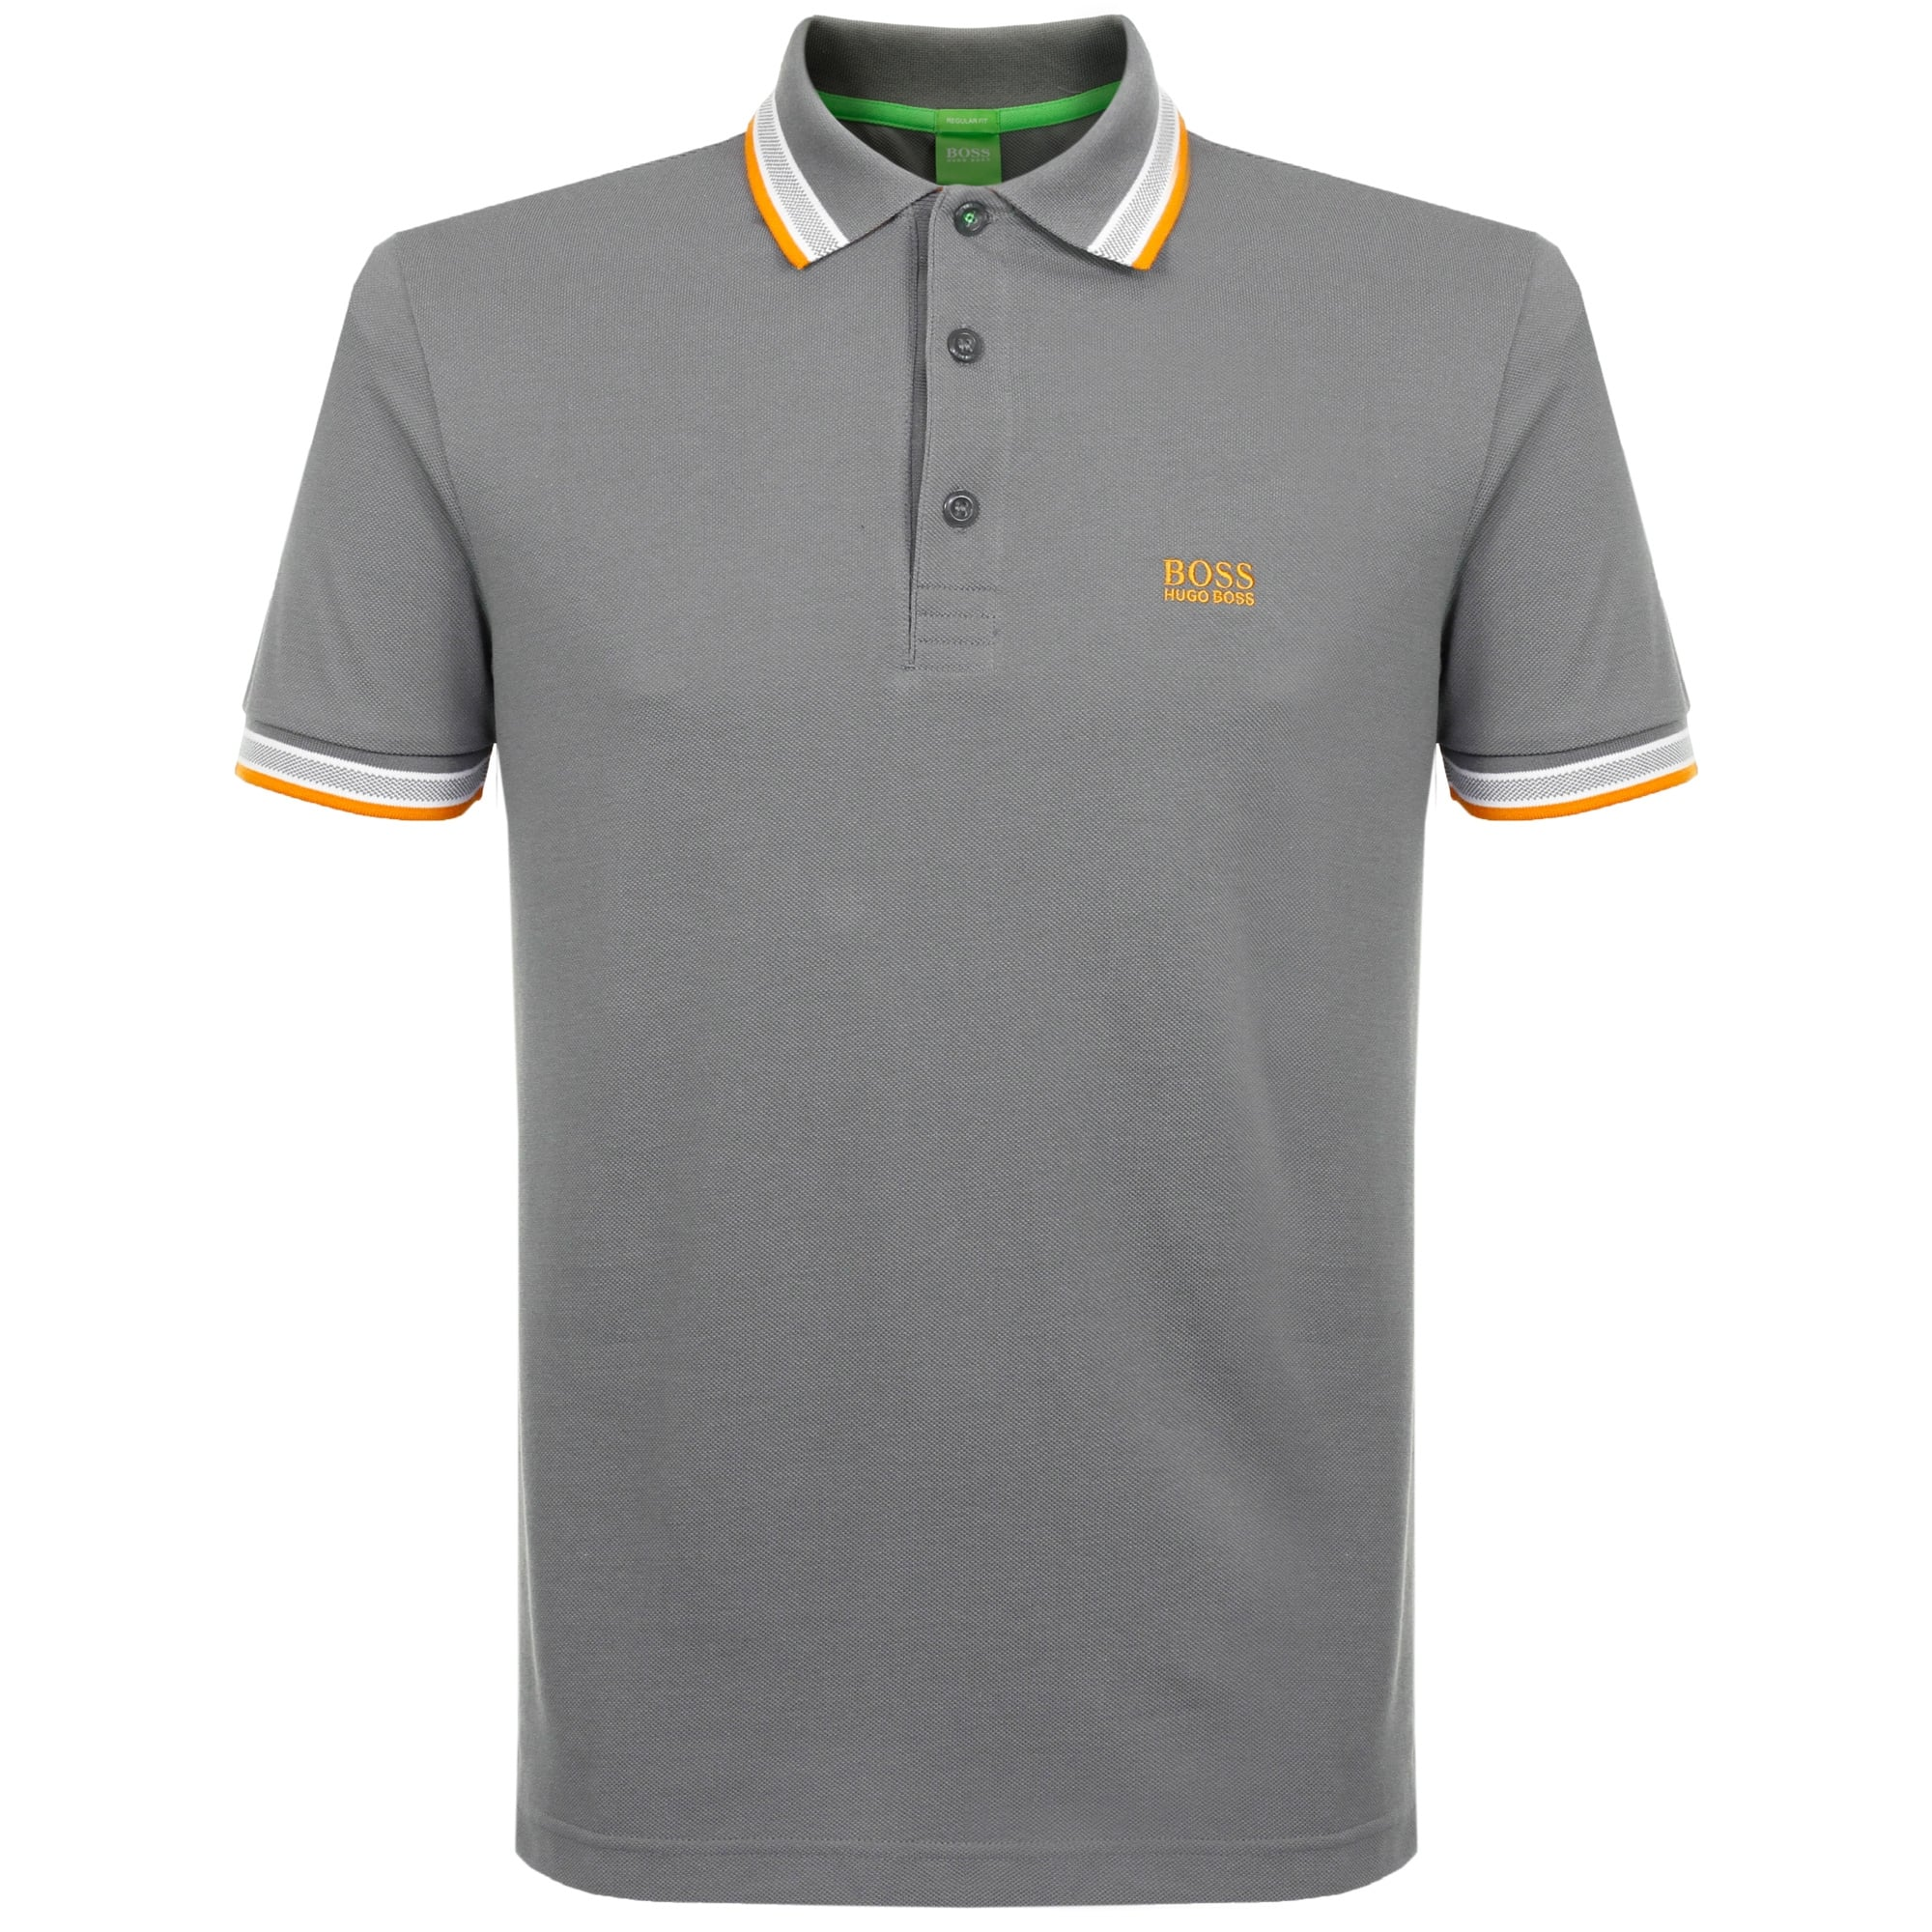 Hugo boss green shop medium grey polo shirt for Hugo boss t shirts online